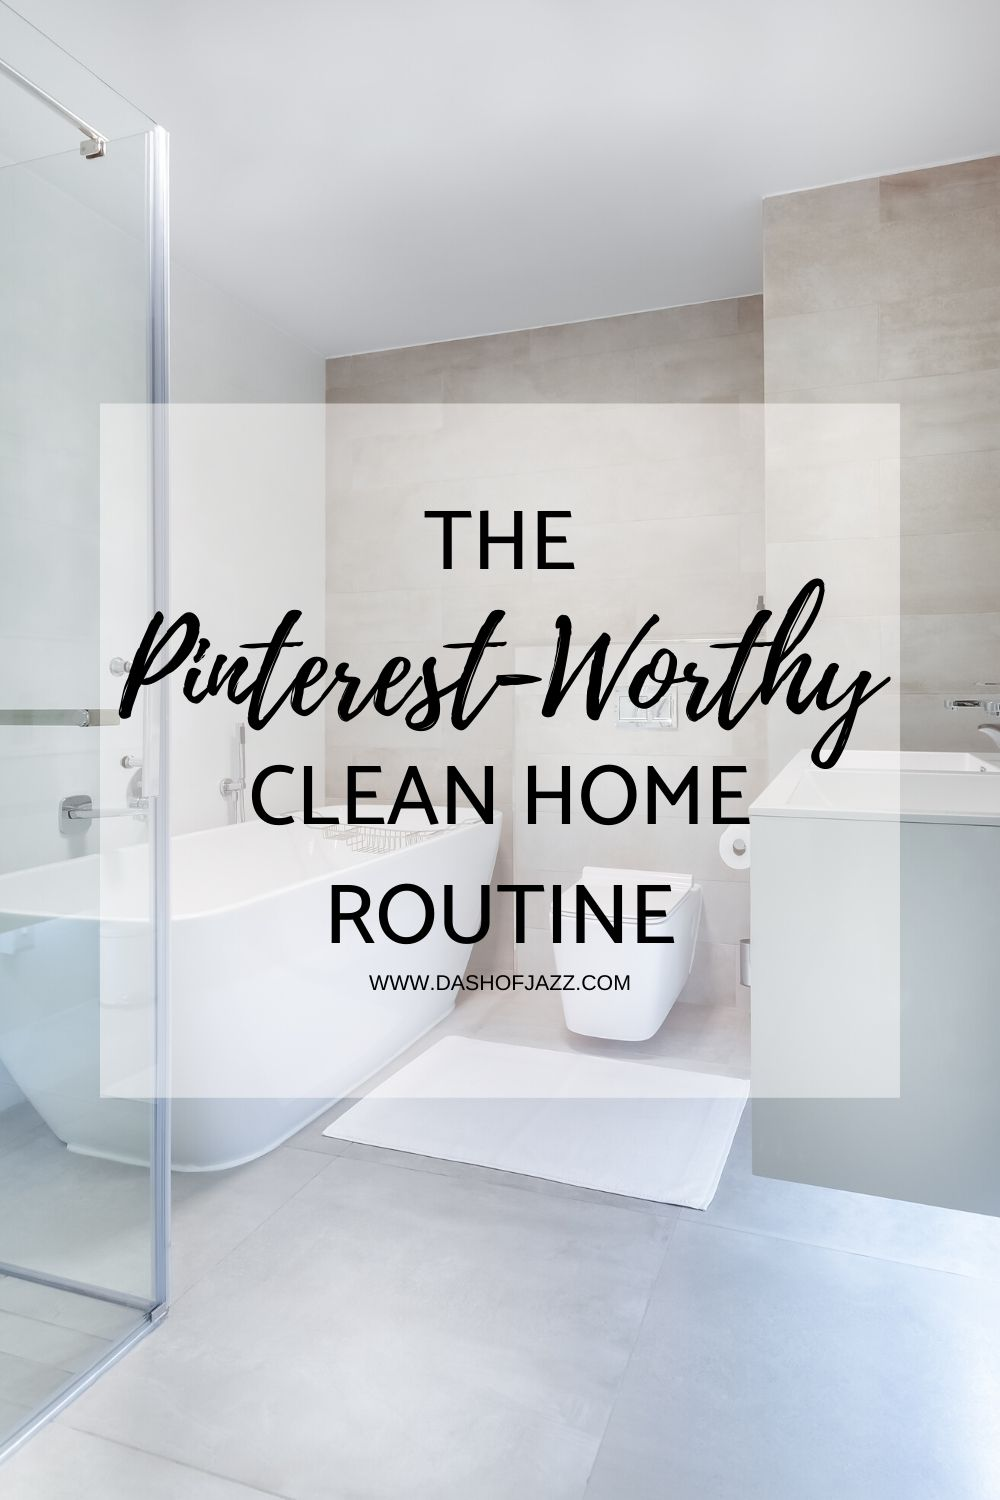 Tried and true natural cleaning hacks and pinterest pins that really work! A Pinterest-worthy clean home routine, room by room. Guide by Dash of Jazz #dashofjazzblog #cleaninghacks #cleaningschedule